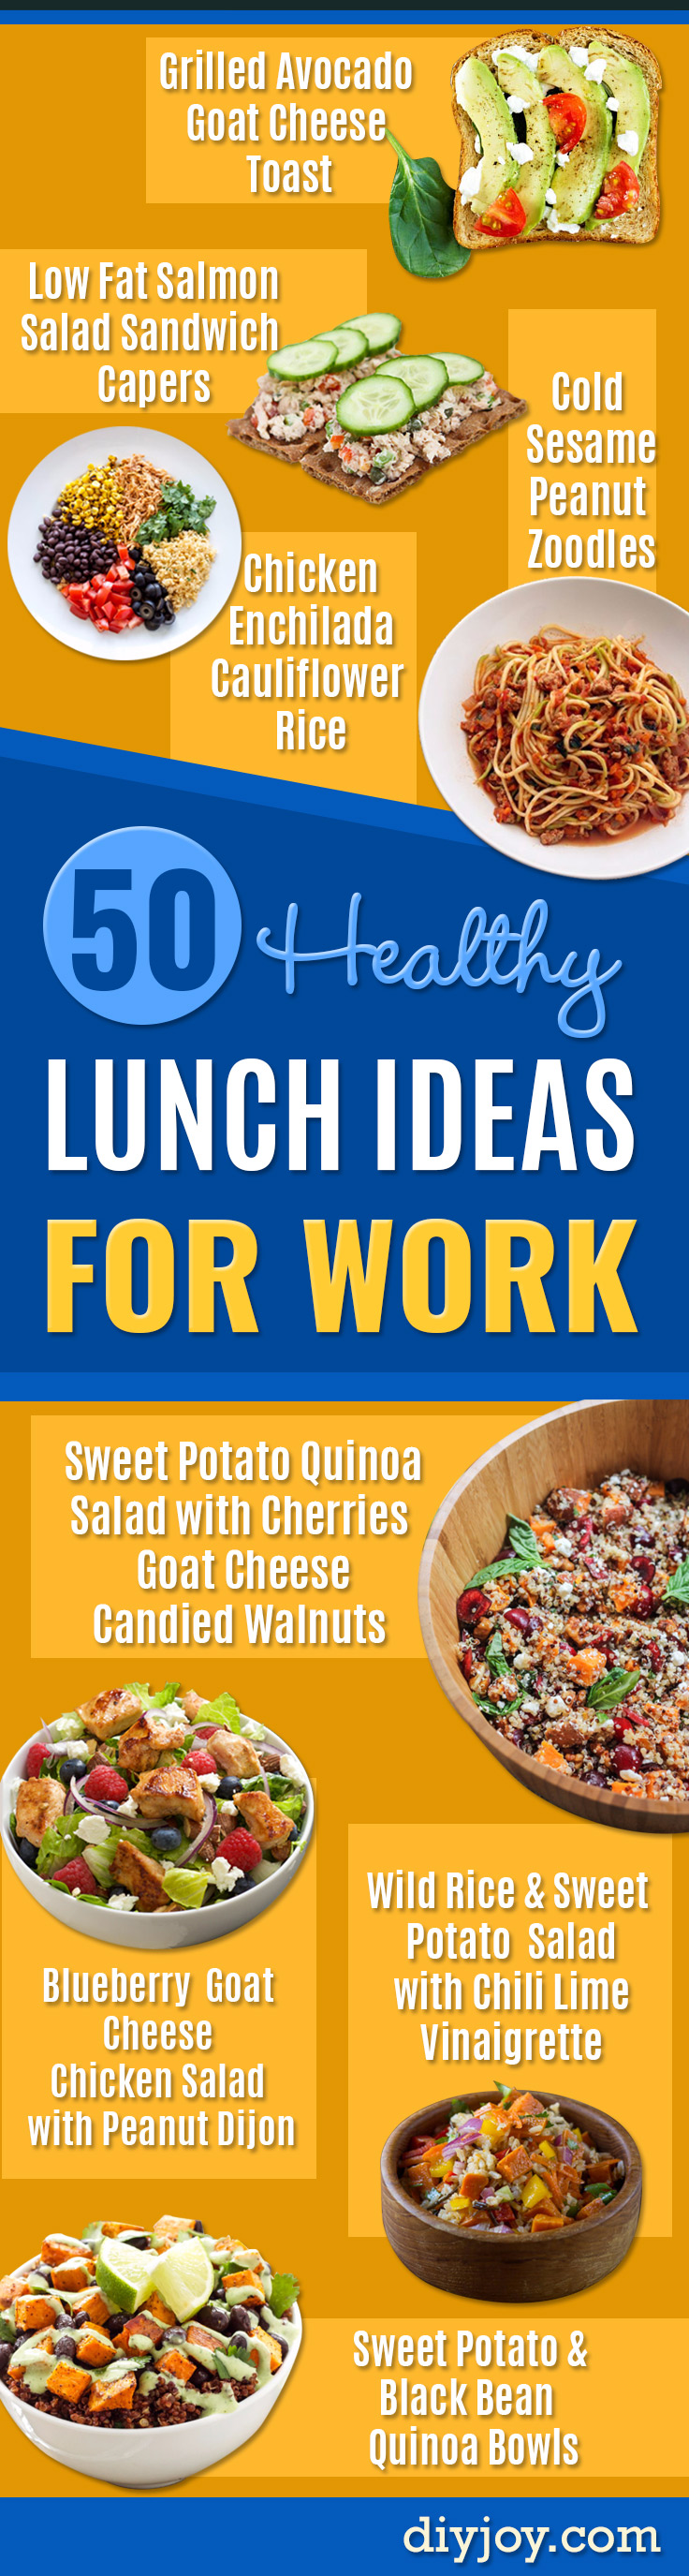 Healthy Lunch Ideas for Work - Quick and Easy Recipes You Can Pack for Lunches at the Office - Lowfat and Simple Ideas for Eating on the Job - Microwave, No Heat, Mason Jar Salads, Sandwiches, Wraps, Soups and Bowls http://diyjoy.com/healthy-lunch-ideas-work